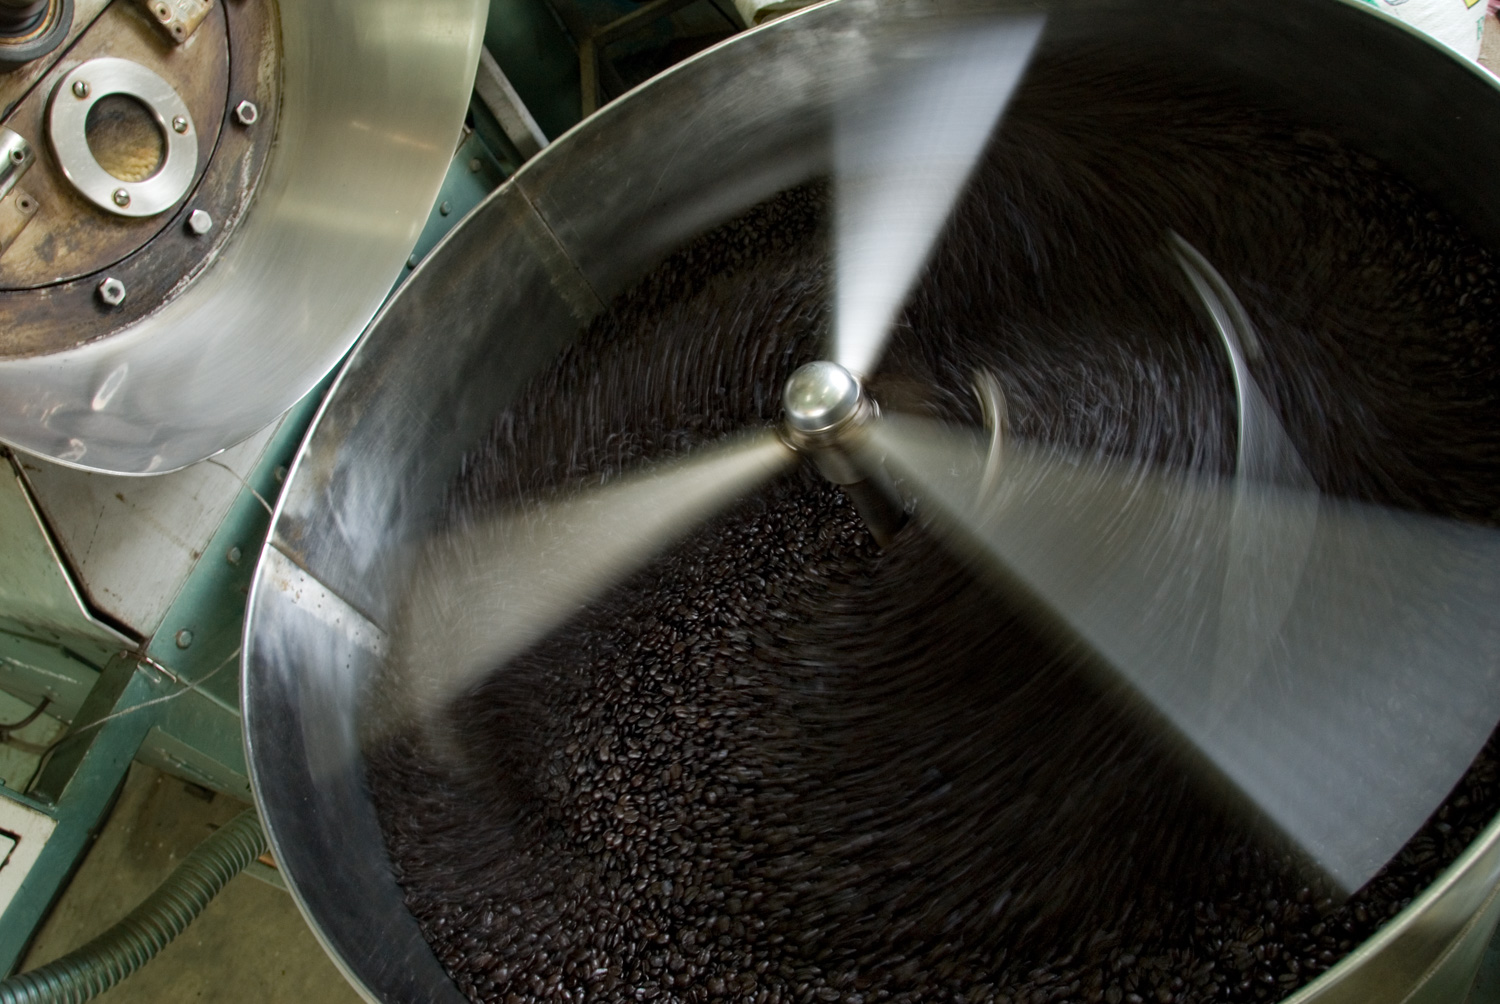 Coffee Roasting Using a Slow Shutter Speed to a Create Sense of Motion